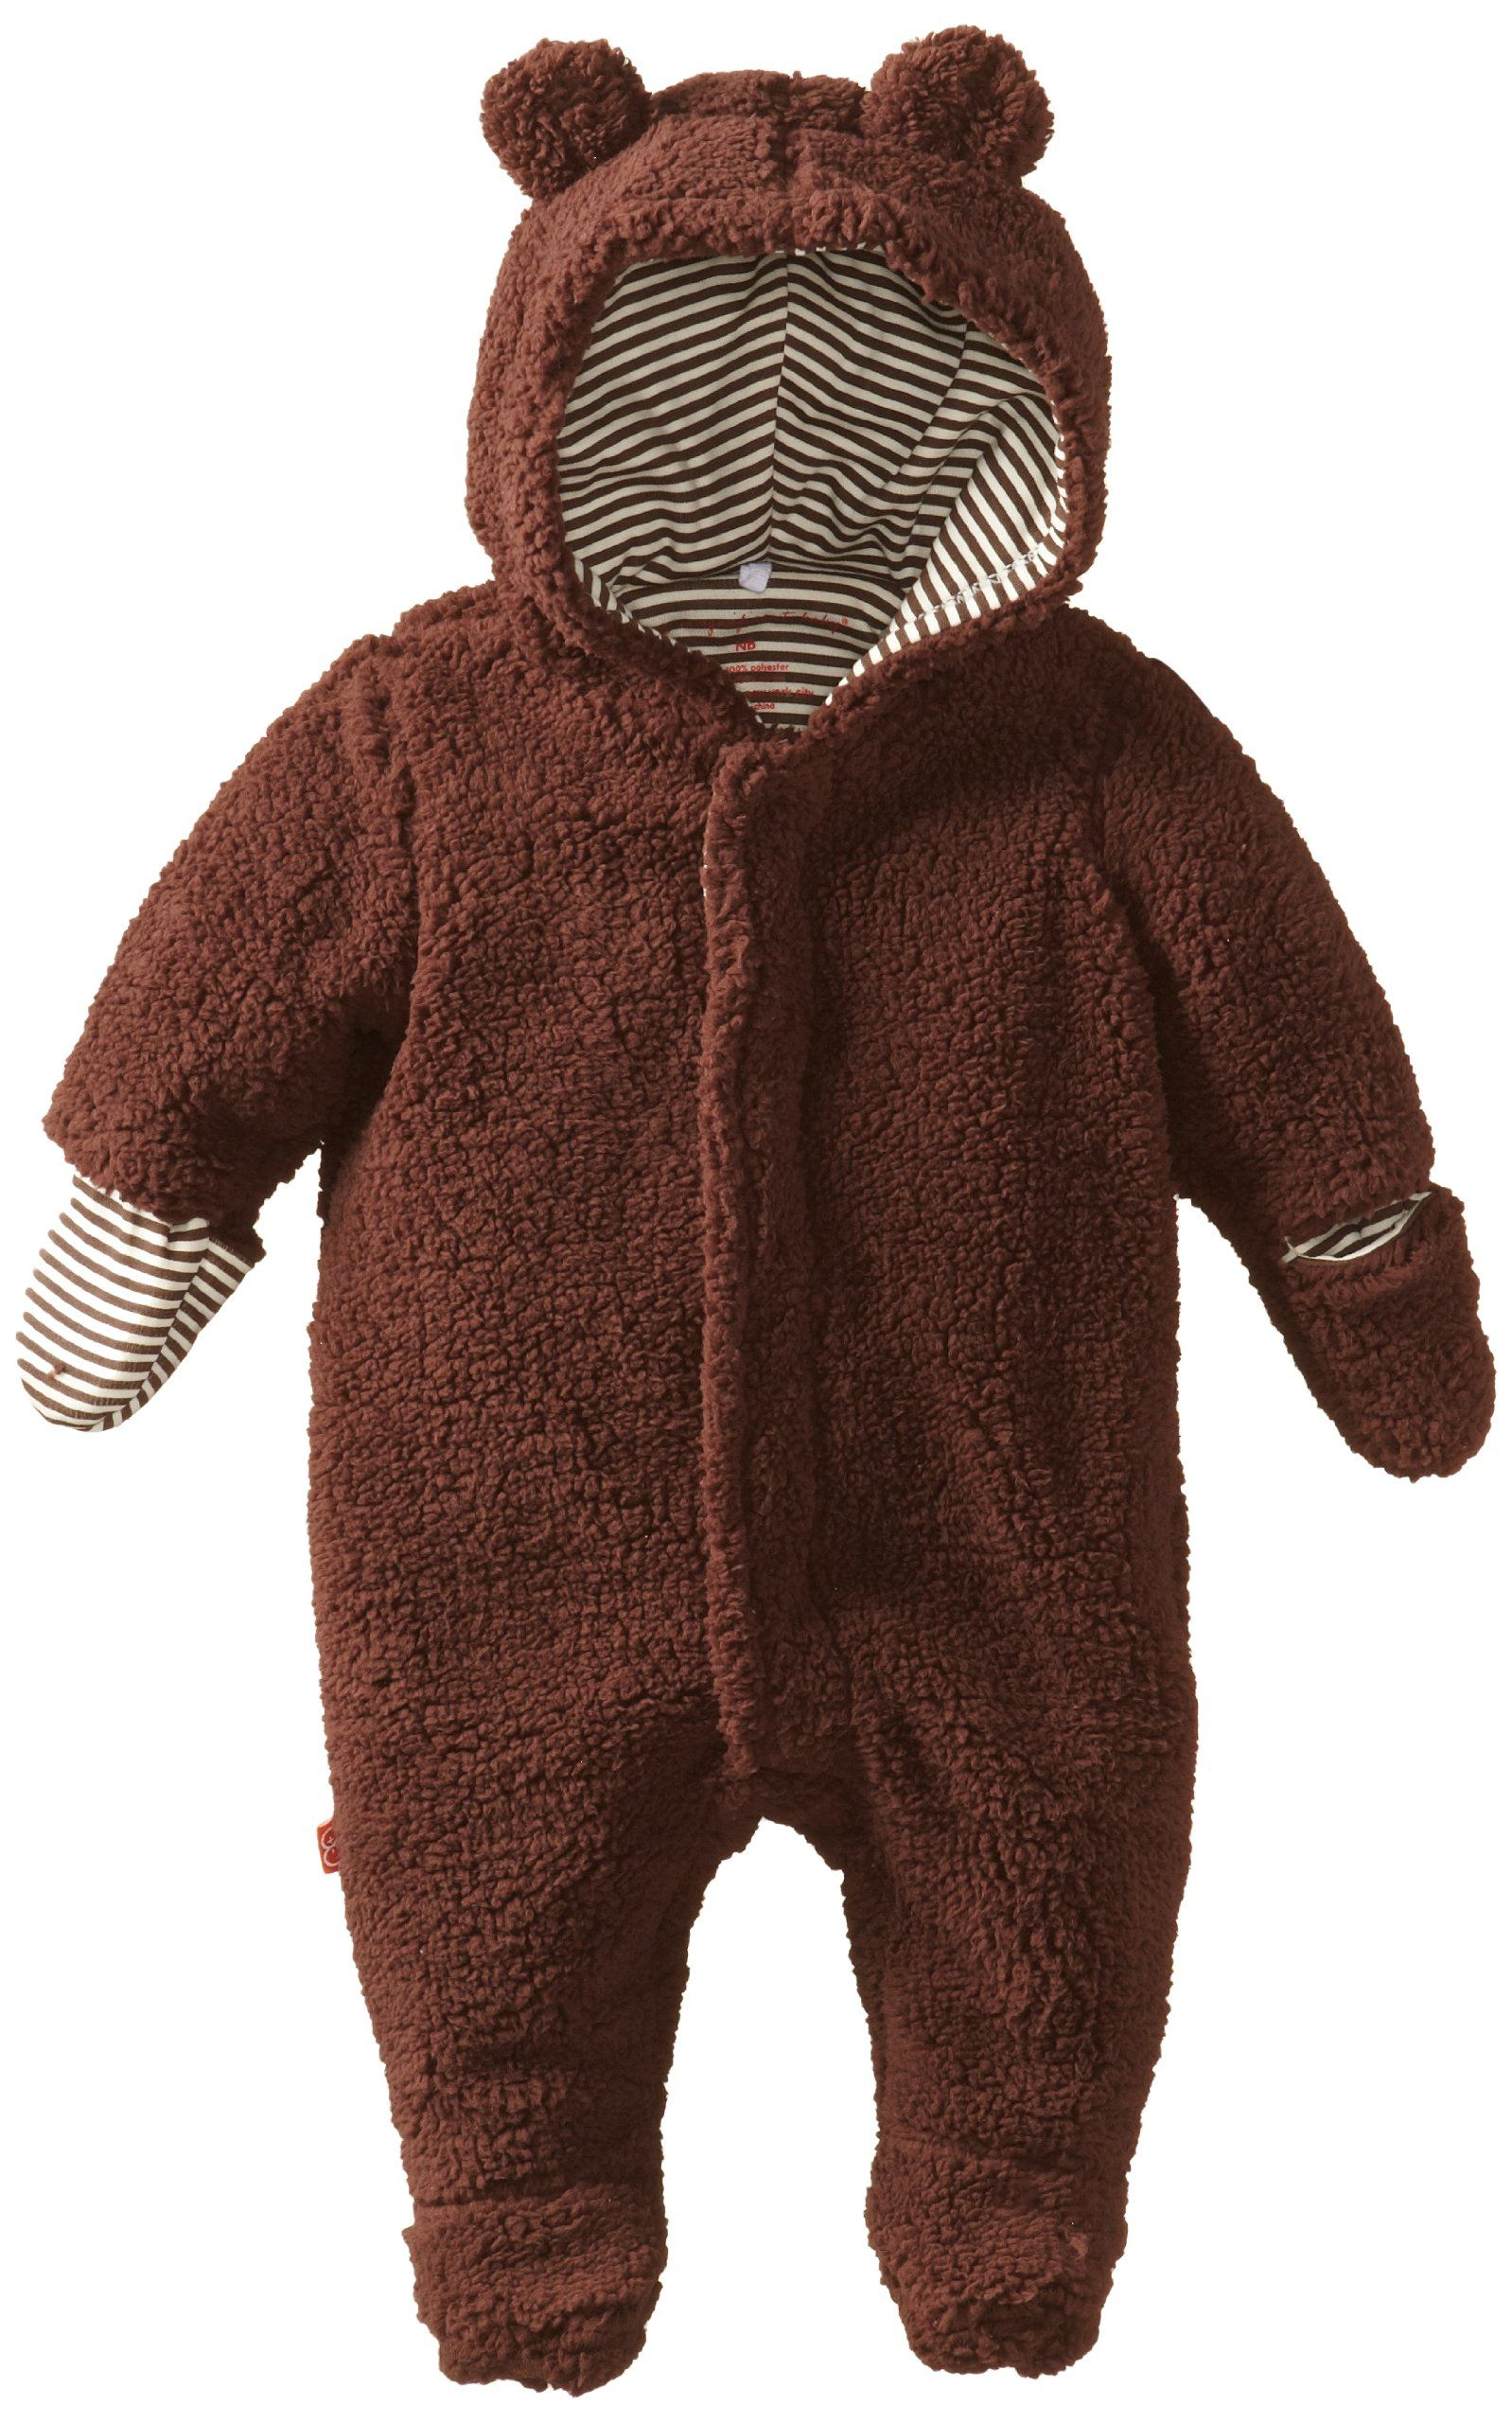 1bde43a4f Amazon.com: Magnificent Baby Unisex-Baby Infant Hooded Bear Pram, Mocha,  New Born: Infant And Toddler Fleece Outerwear Jackets: Clothing